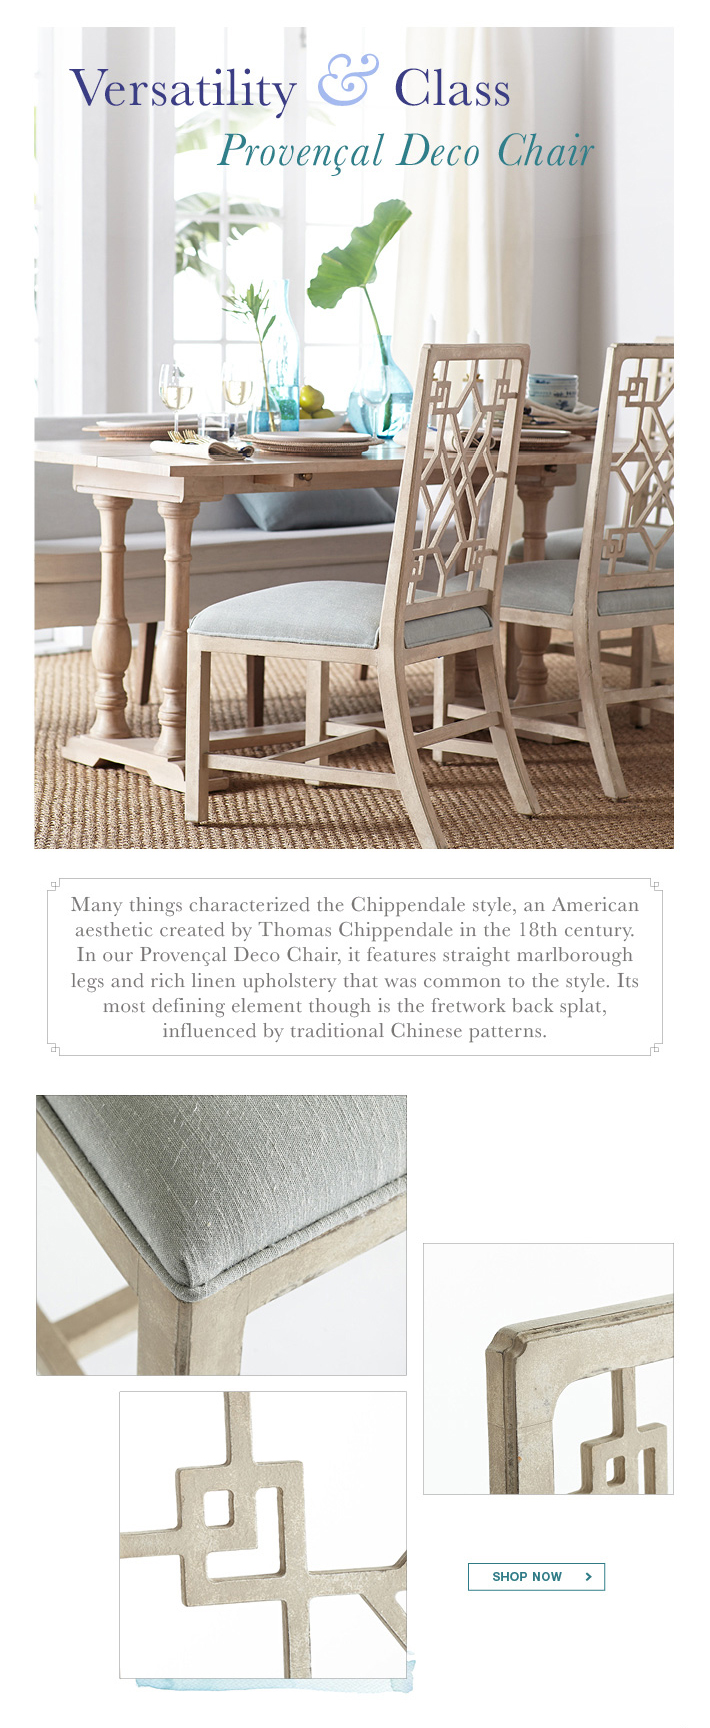 2692-EMAIL-PDS-Proventcial-Deco-Chair-version-2_02.jpg